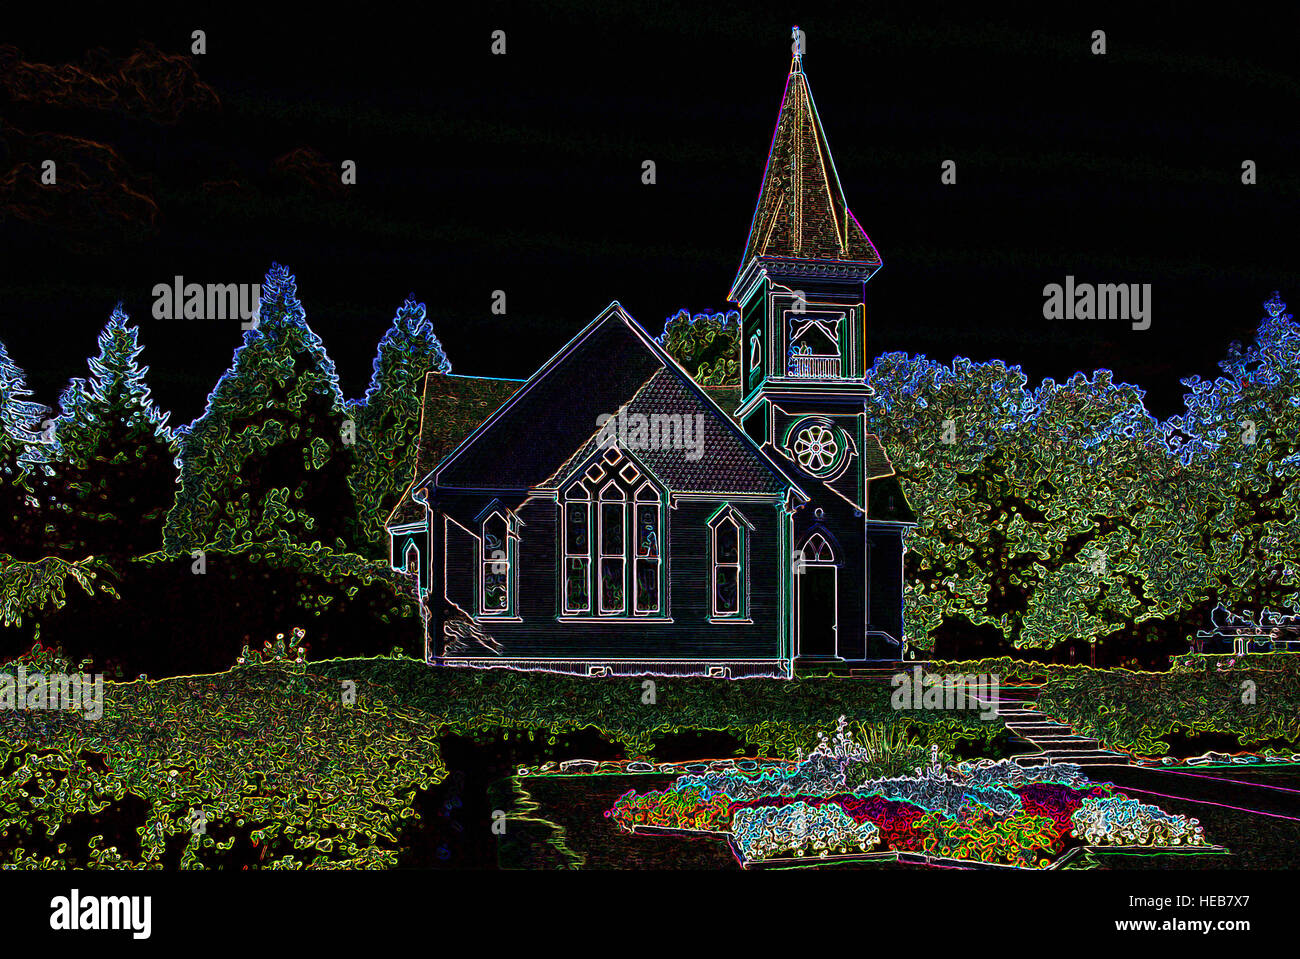 Small Wooden Rural Church - Digitally Manipulated Image with Glowing Edges, Abstract Architecture and Landscape - Stock Image